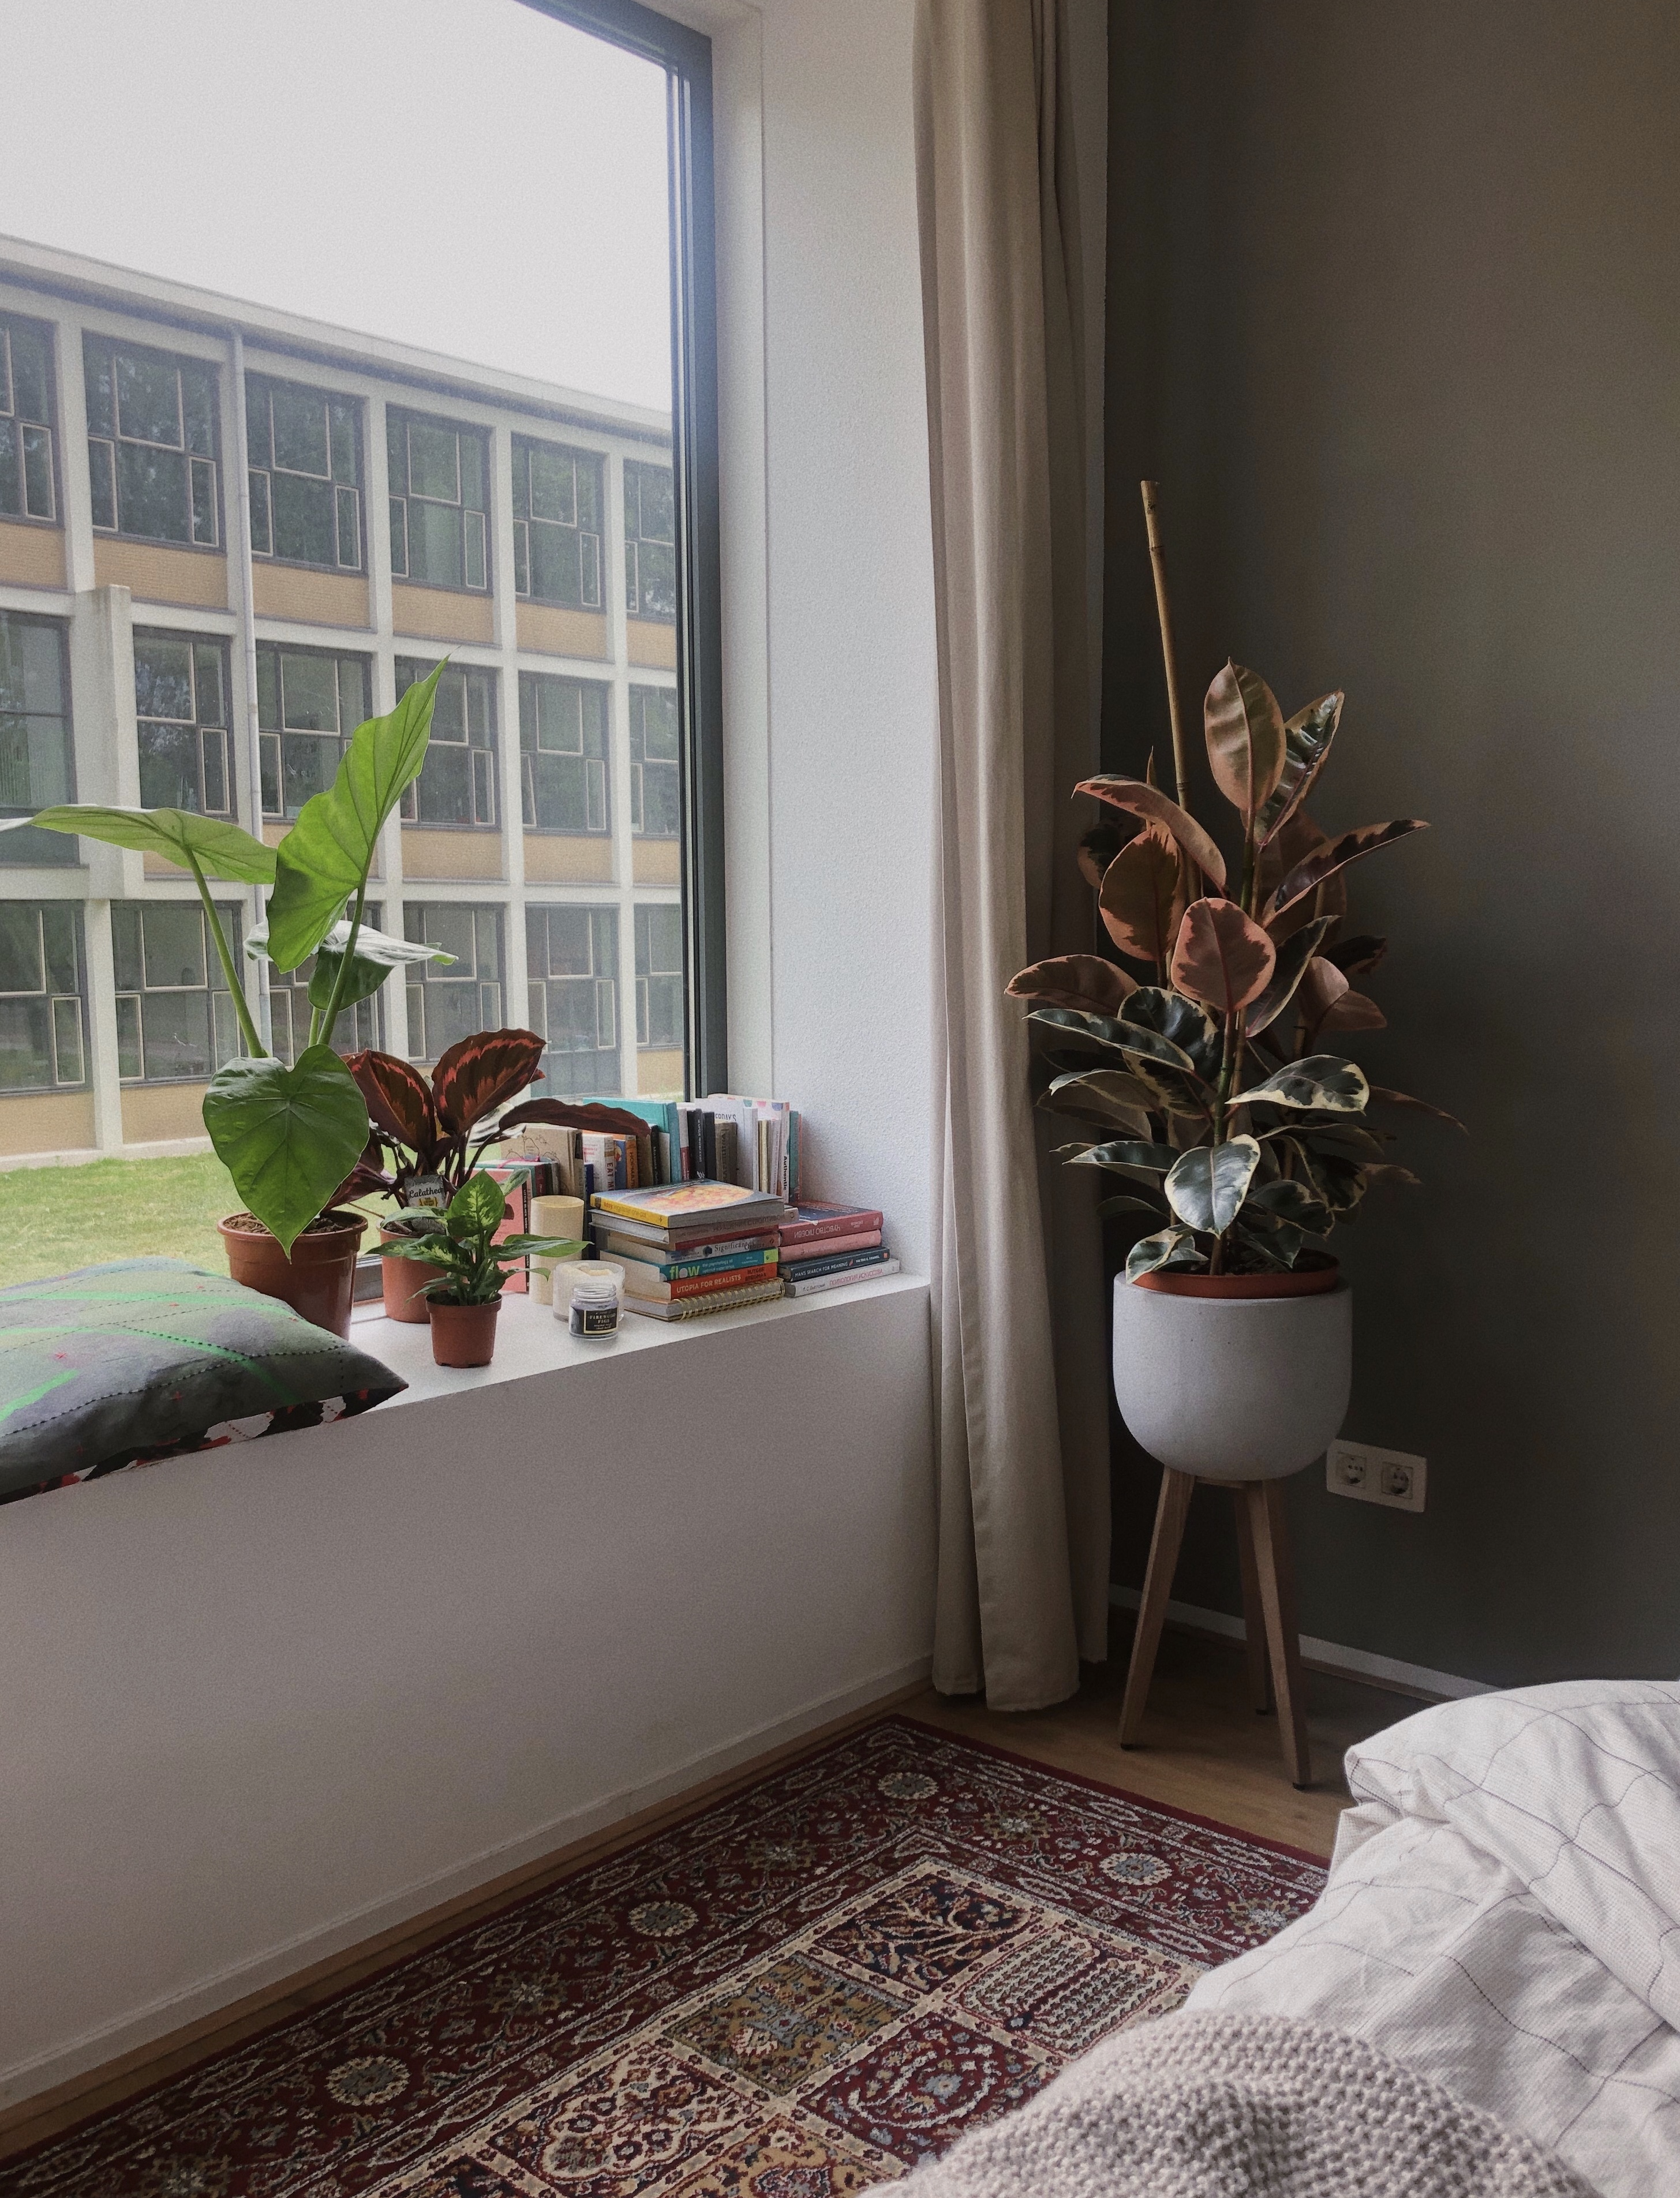 Cozying up Your Place with Plants & Other Tips